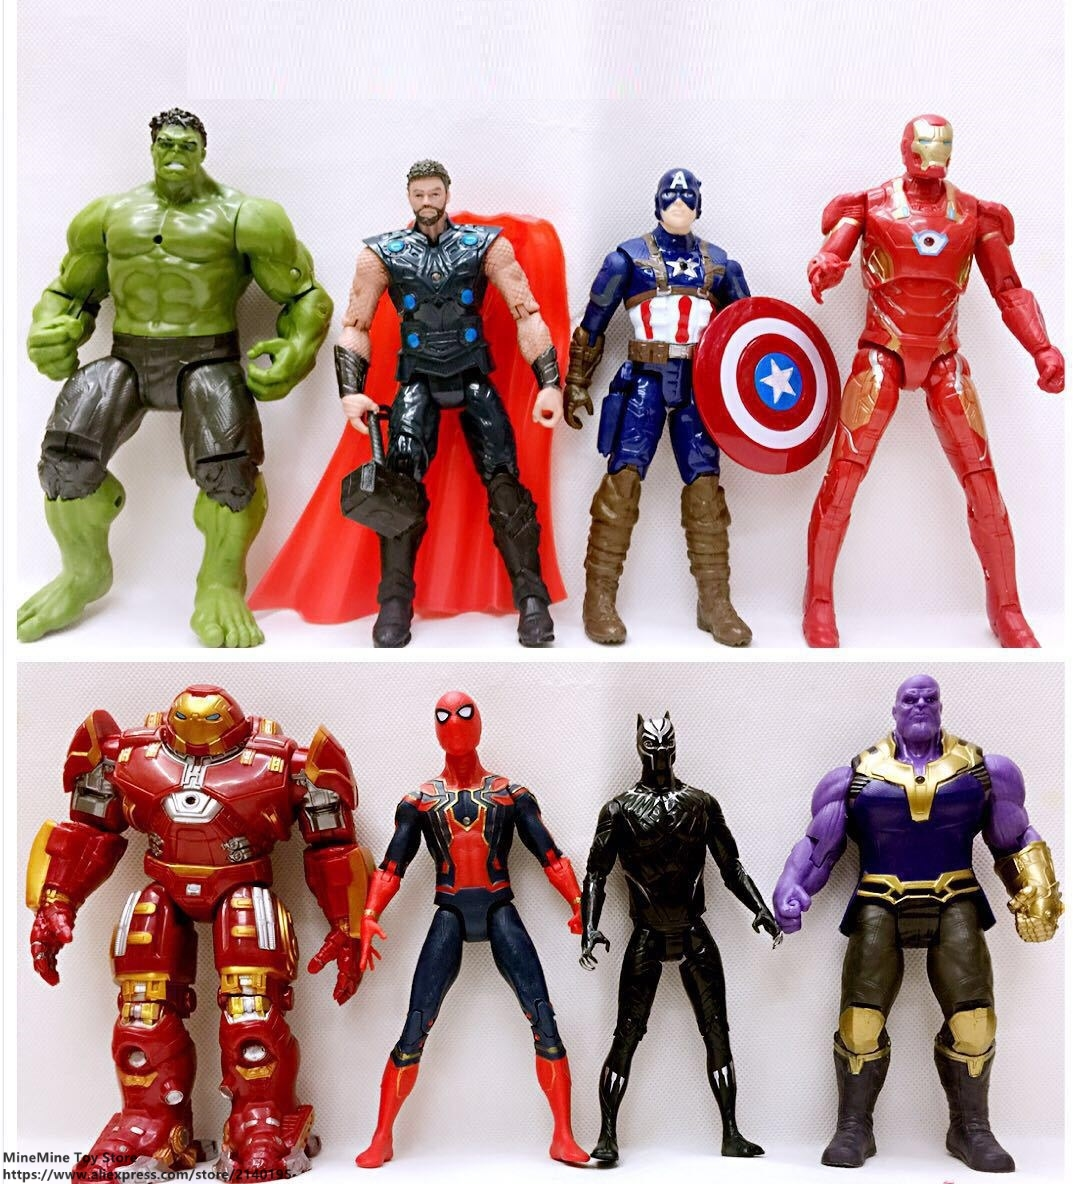 ZXZ Marvel Avengers 8 pcs/set Super Heroes Thor Hulk Buster Action Figure Anime Decoration Collection Figurine Toy model